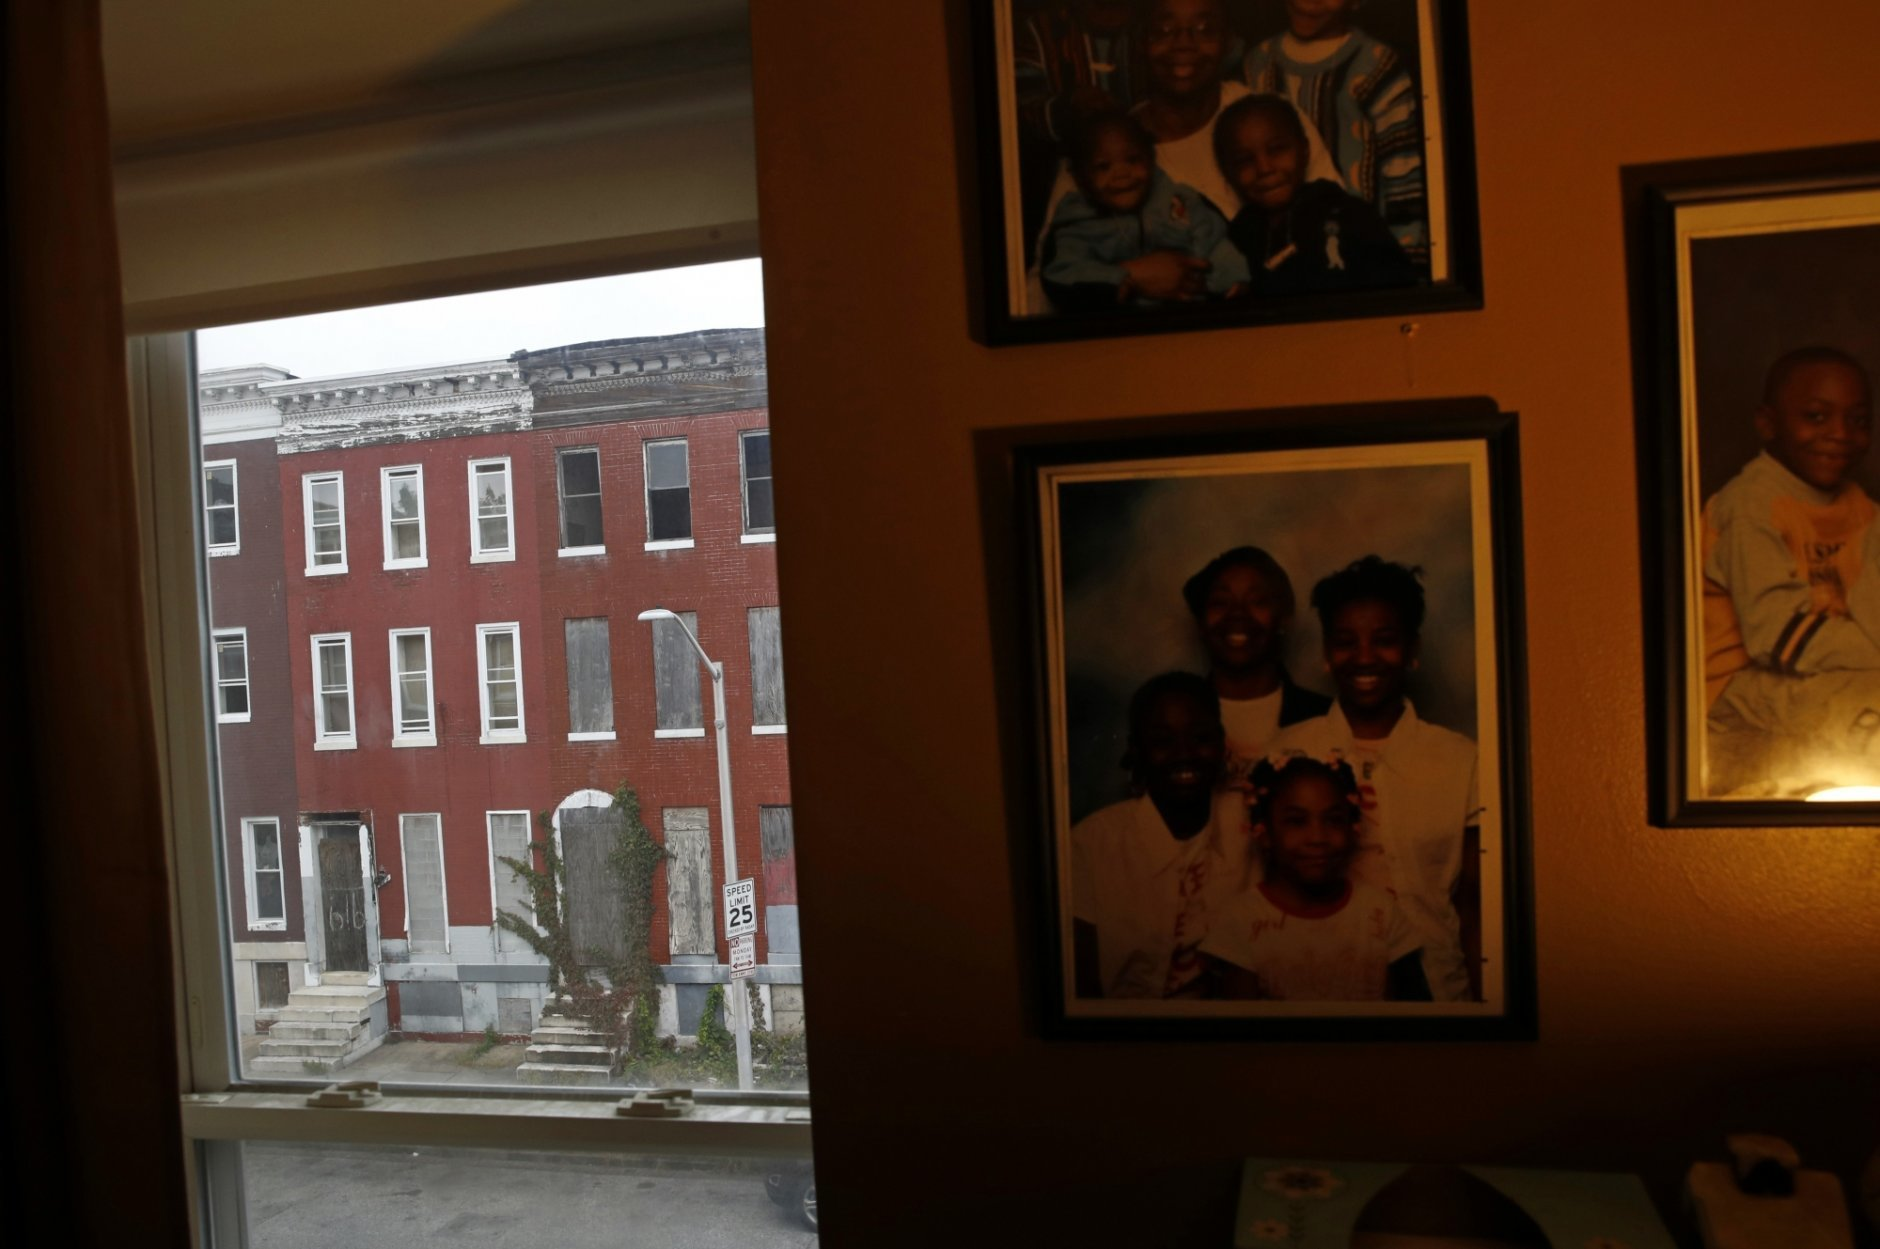 In this Oct. 26, 2018 photo, vacant rowhomes are visible from resident Nayeka Scott's living room in the Harlem Park neighborhood of Baltimore. A sea of roughly 16,000 uninhabitable row homes with weeds growing out of boarded-up windows are symbols of this city's enduring social divide. Housing researchers say some 20,000 other city properties are unoccupied and pose a latent risk of becoming crumbling shells in the future. (AP Photo/Patrick Semansky)